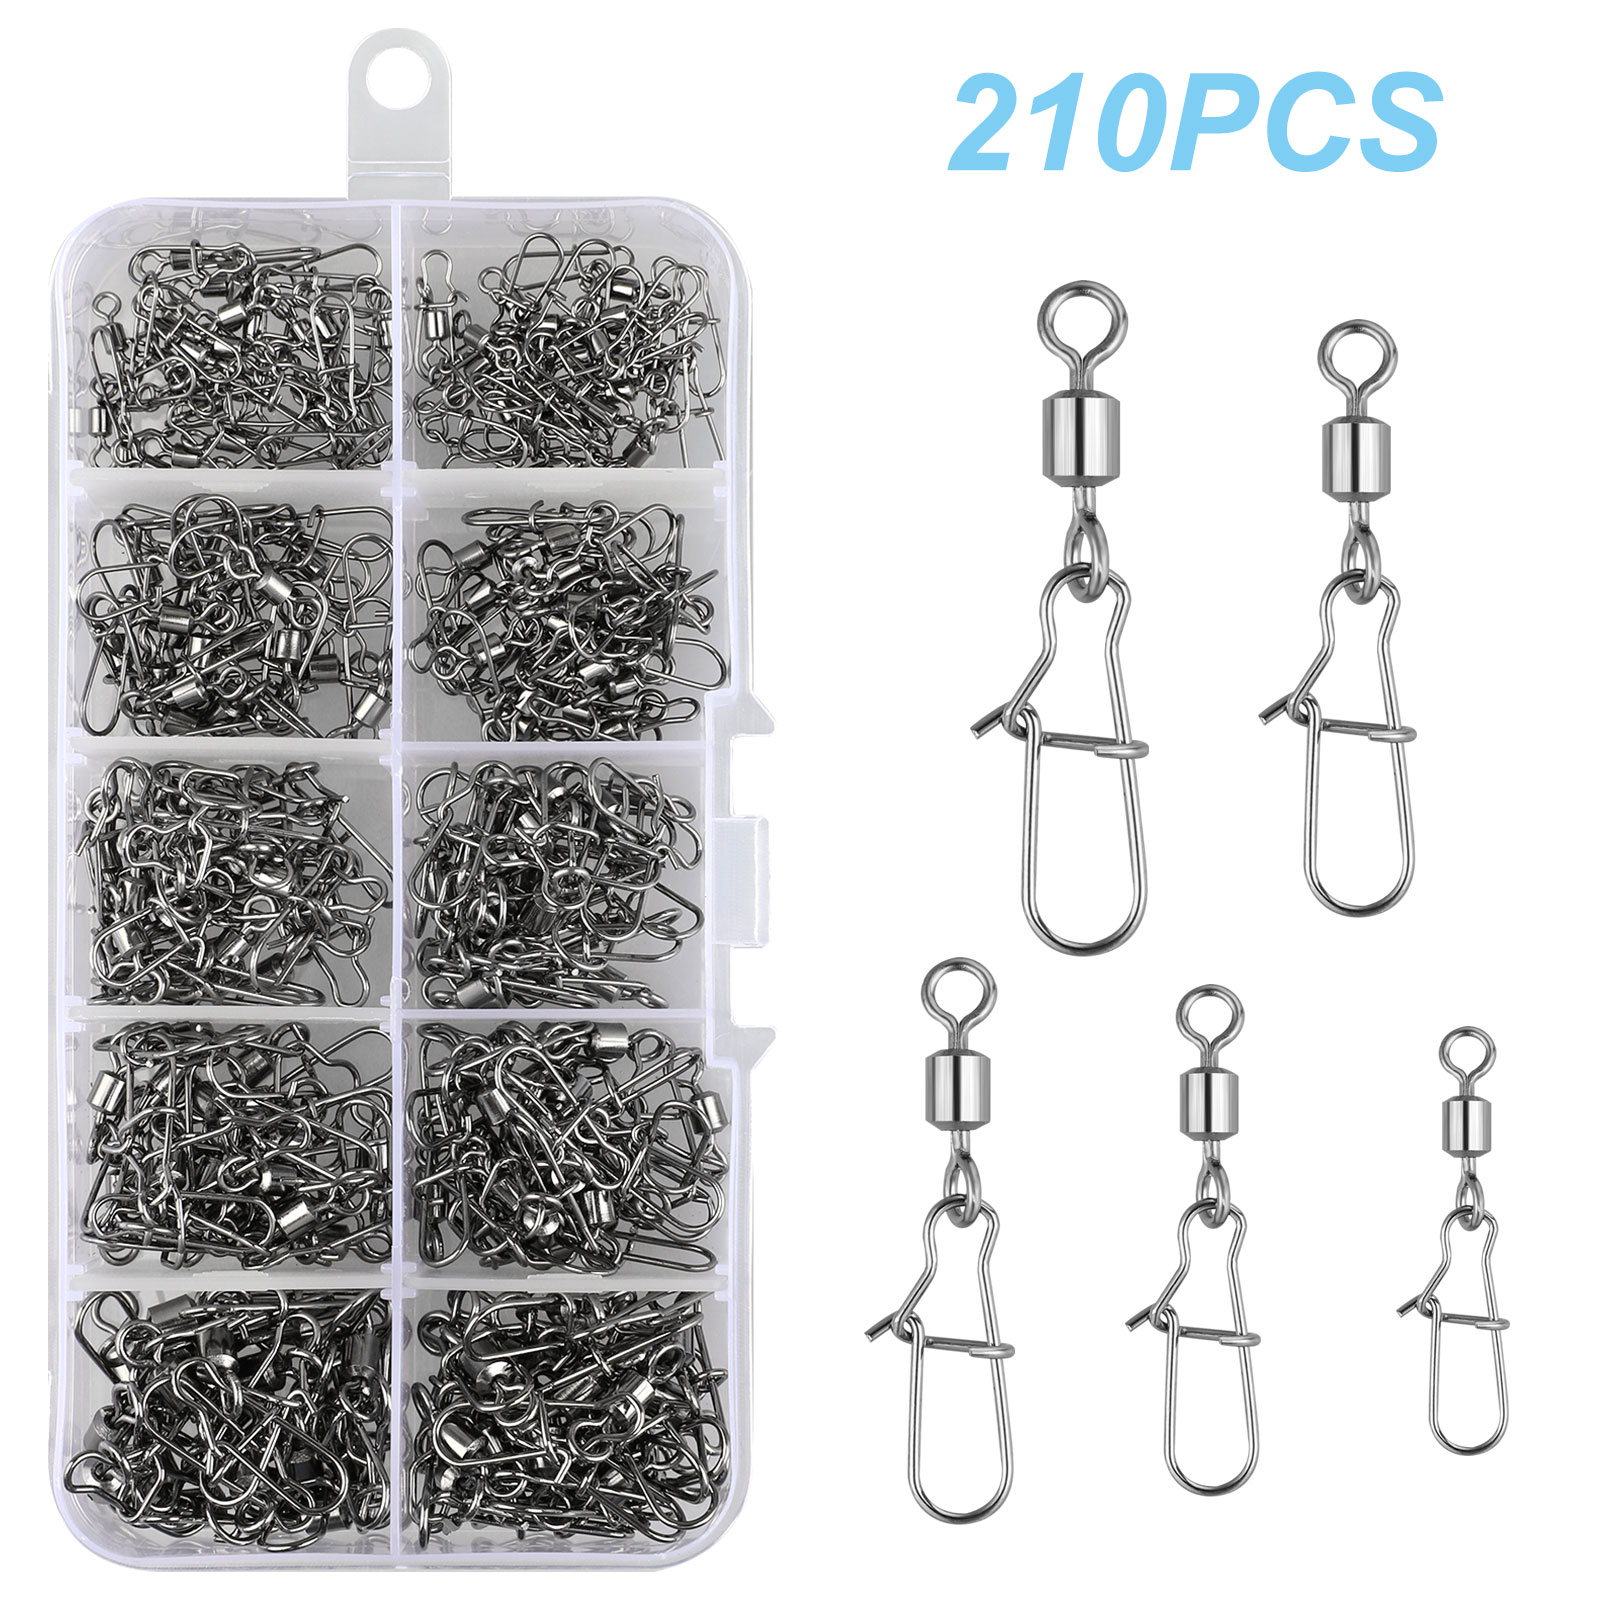 210Pcs Rolling Fishing Swivels with Snaps Fishing Rolling Swivels Connectors